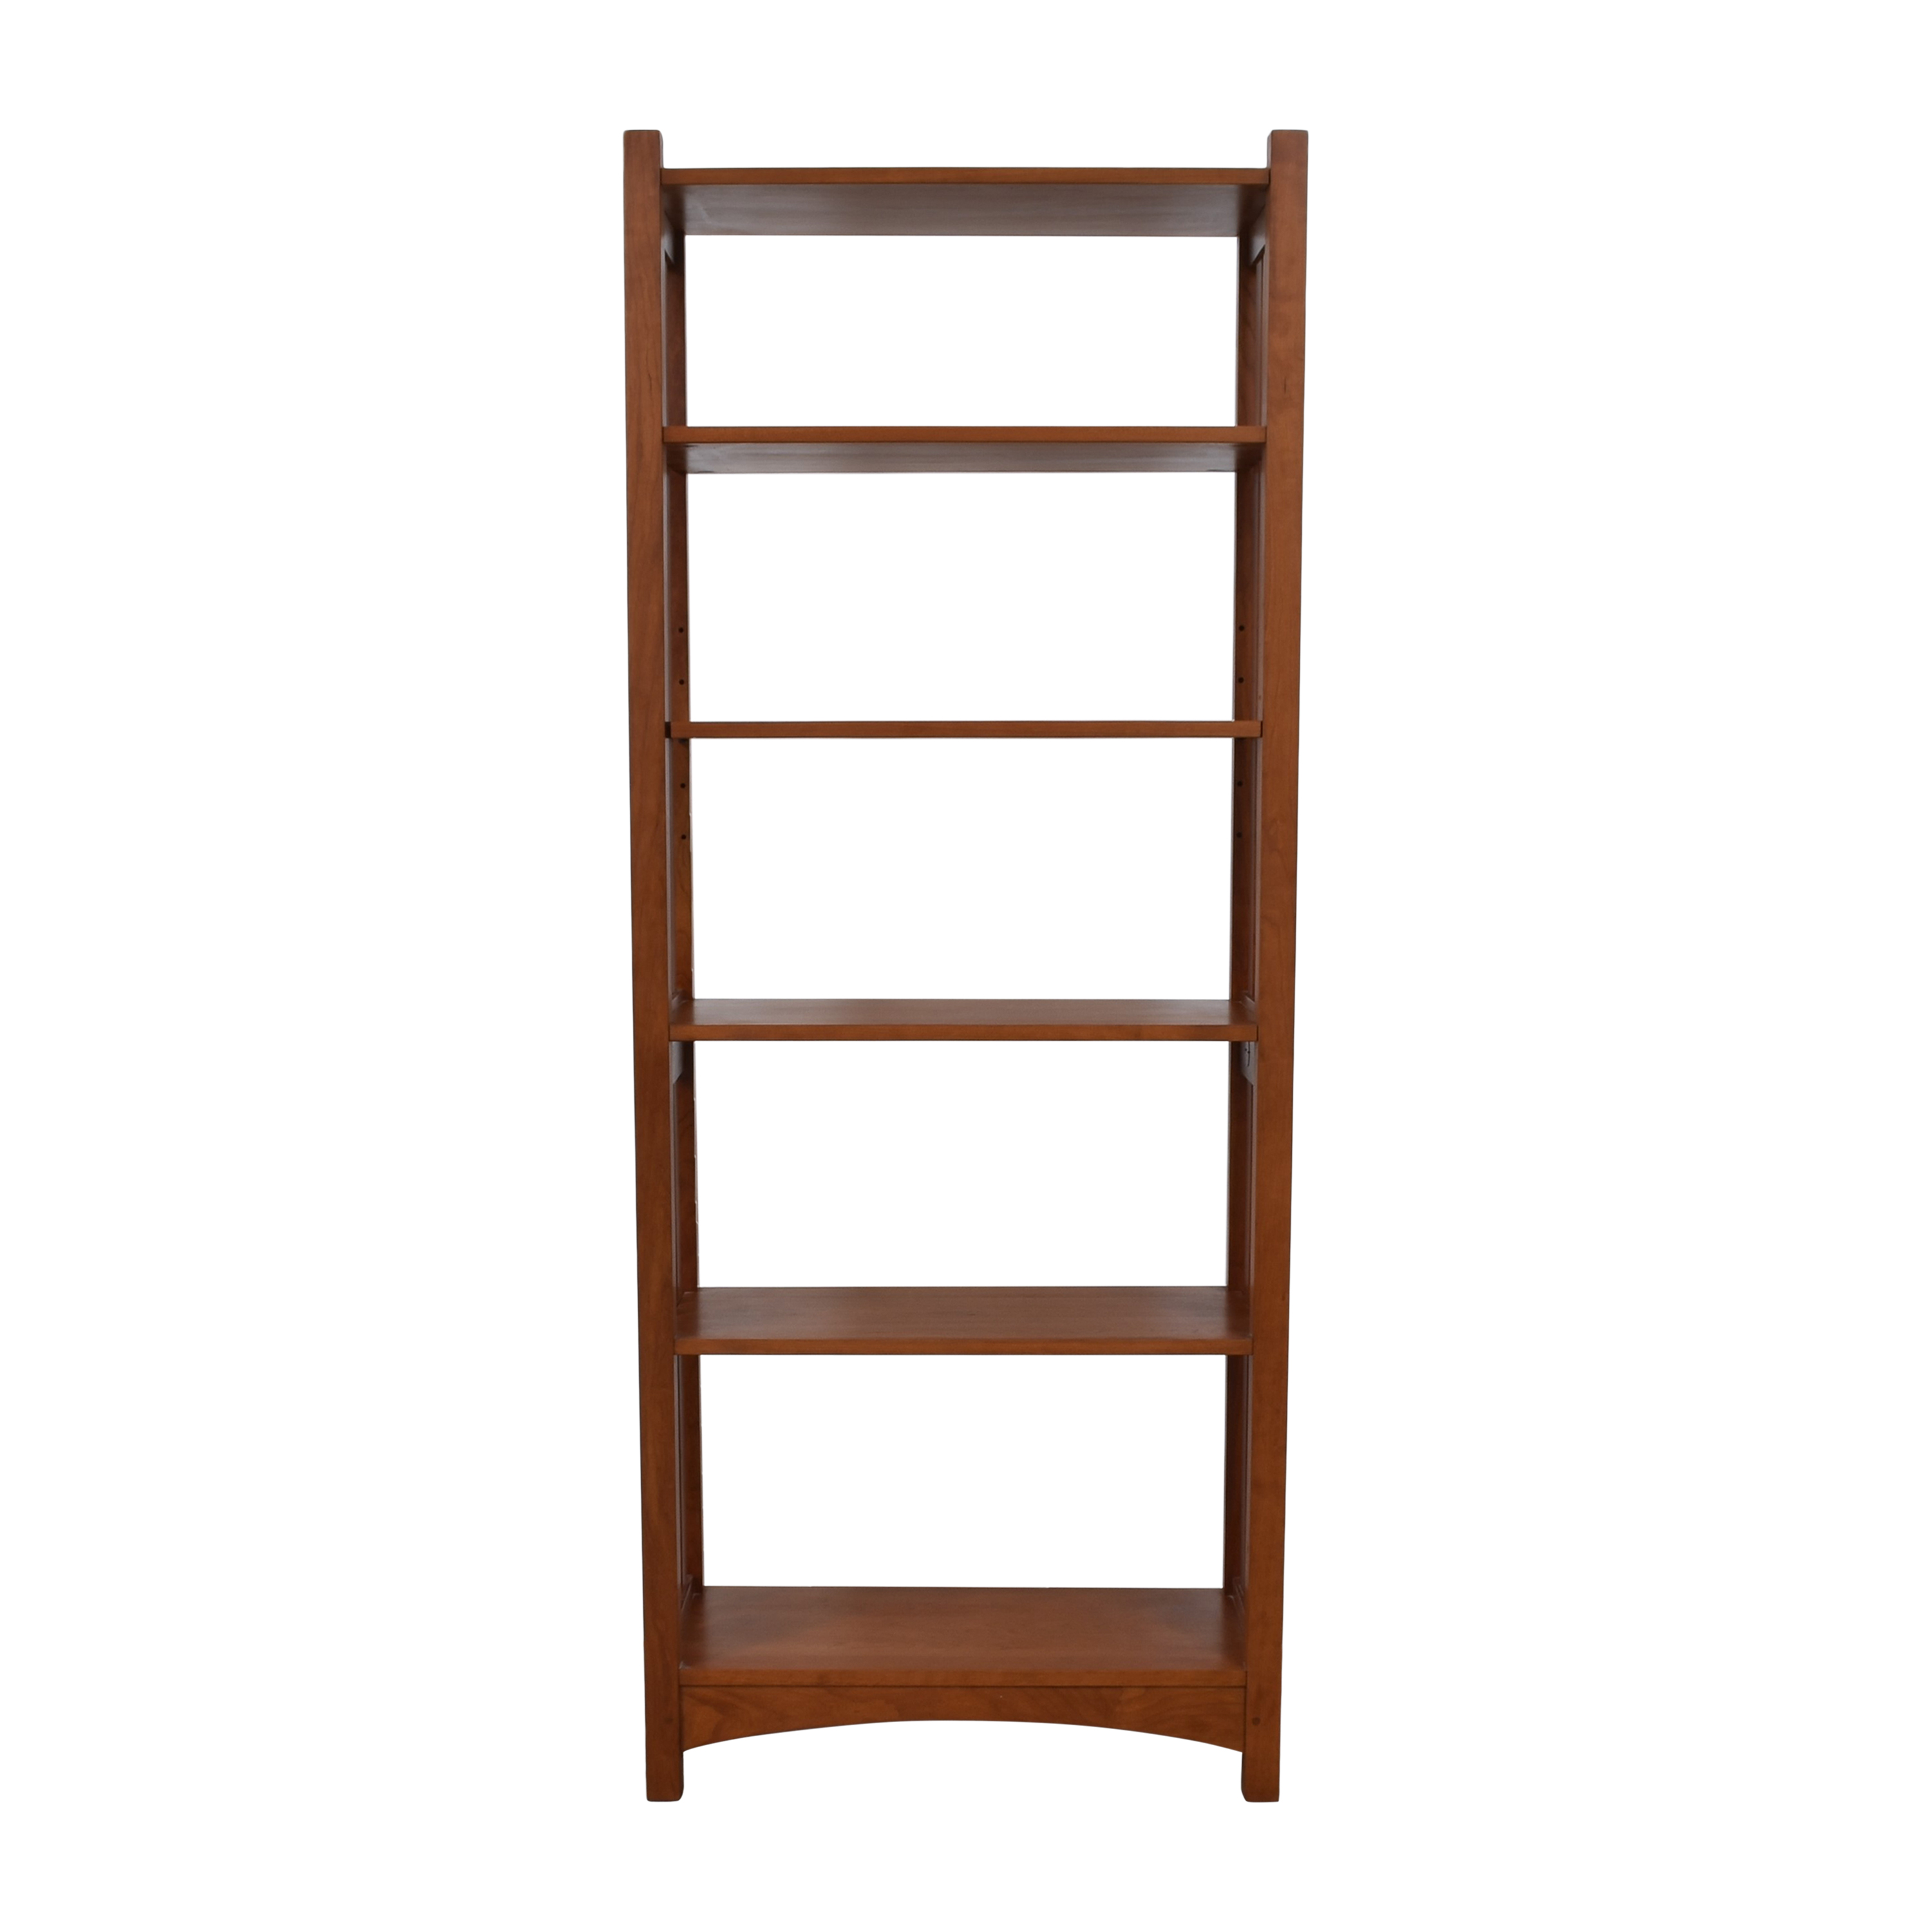 Stickley Furniture Stickley Mission Collection Spindle Open Bookcase discount